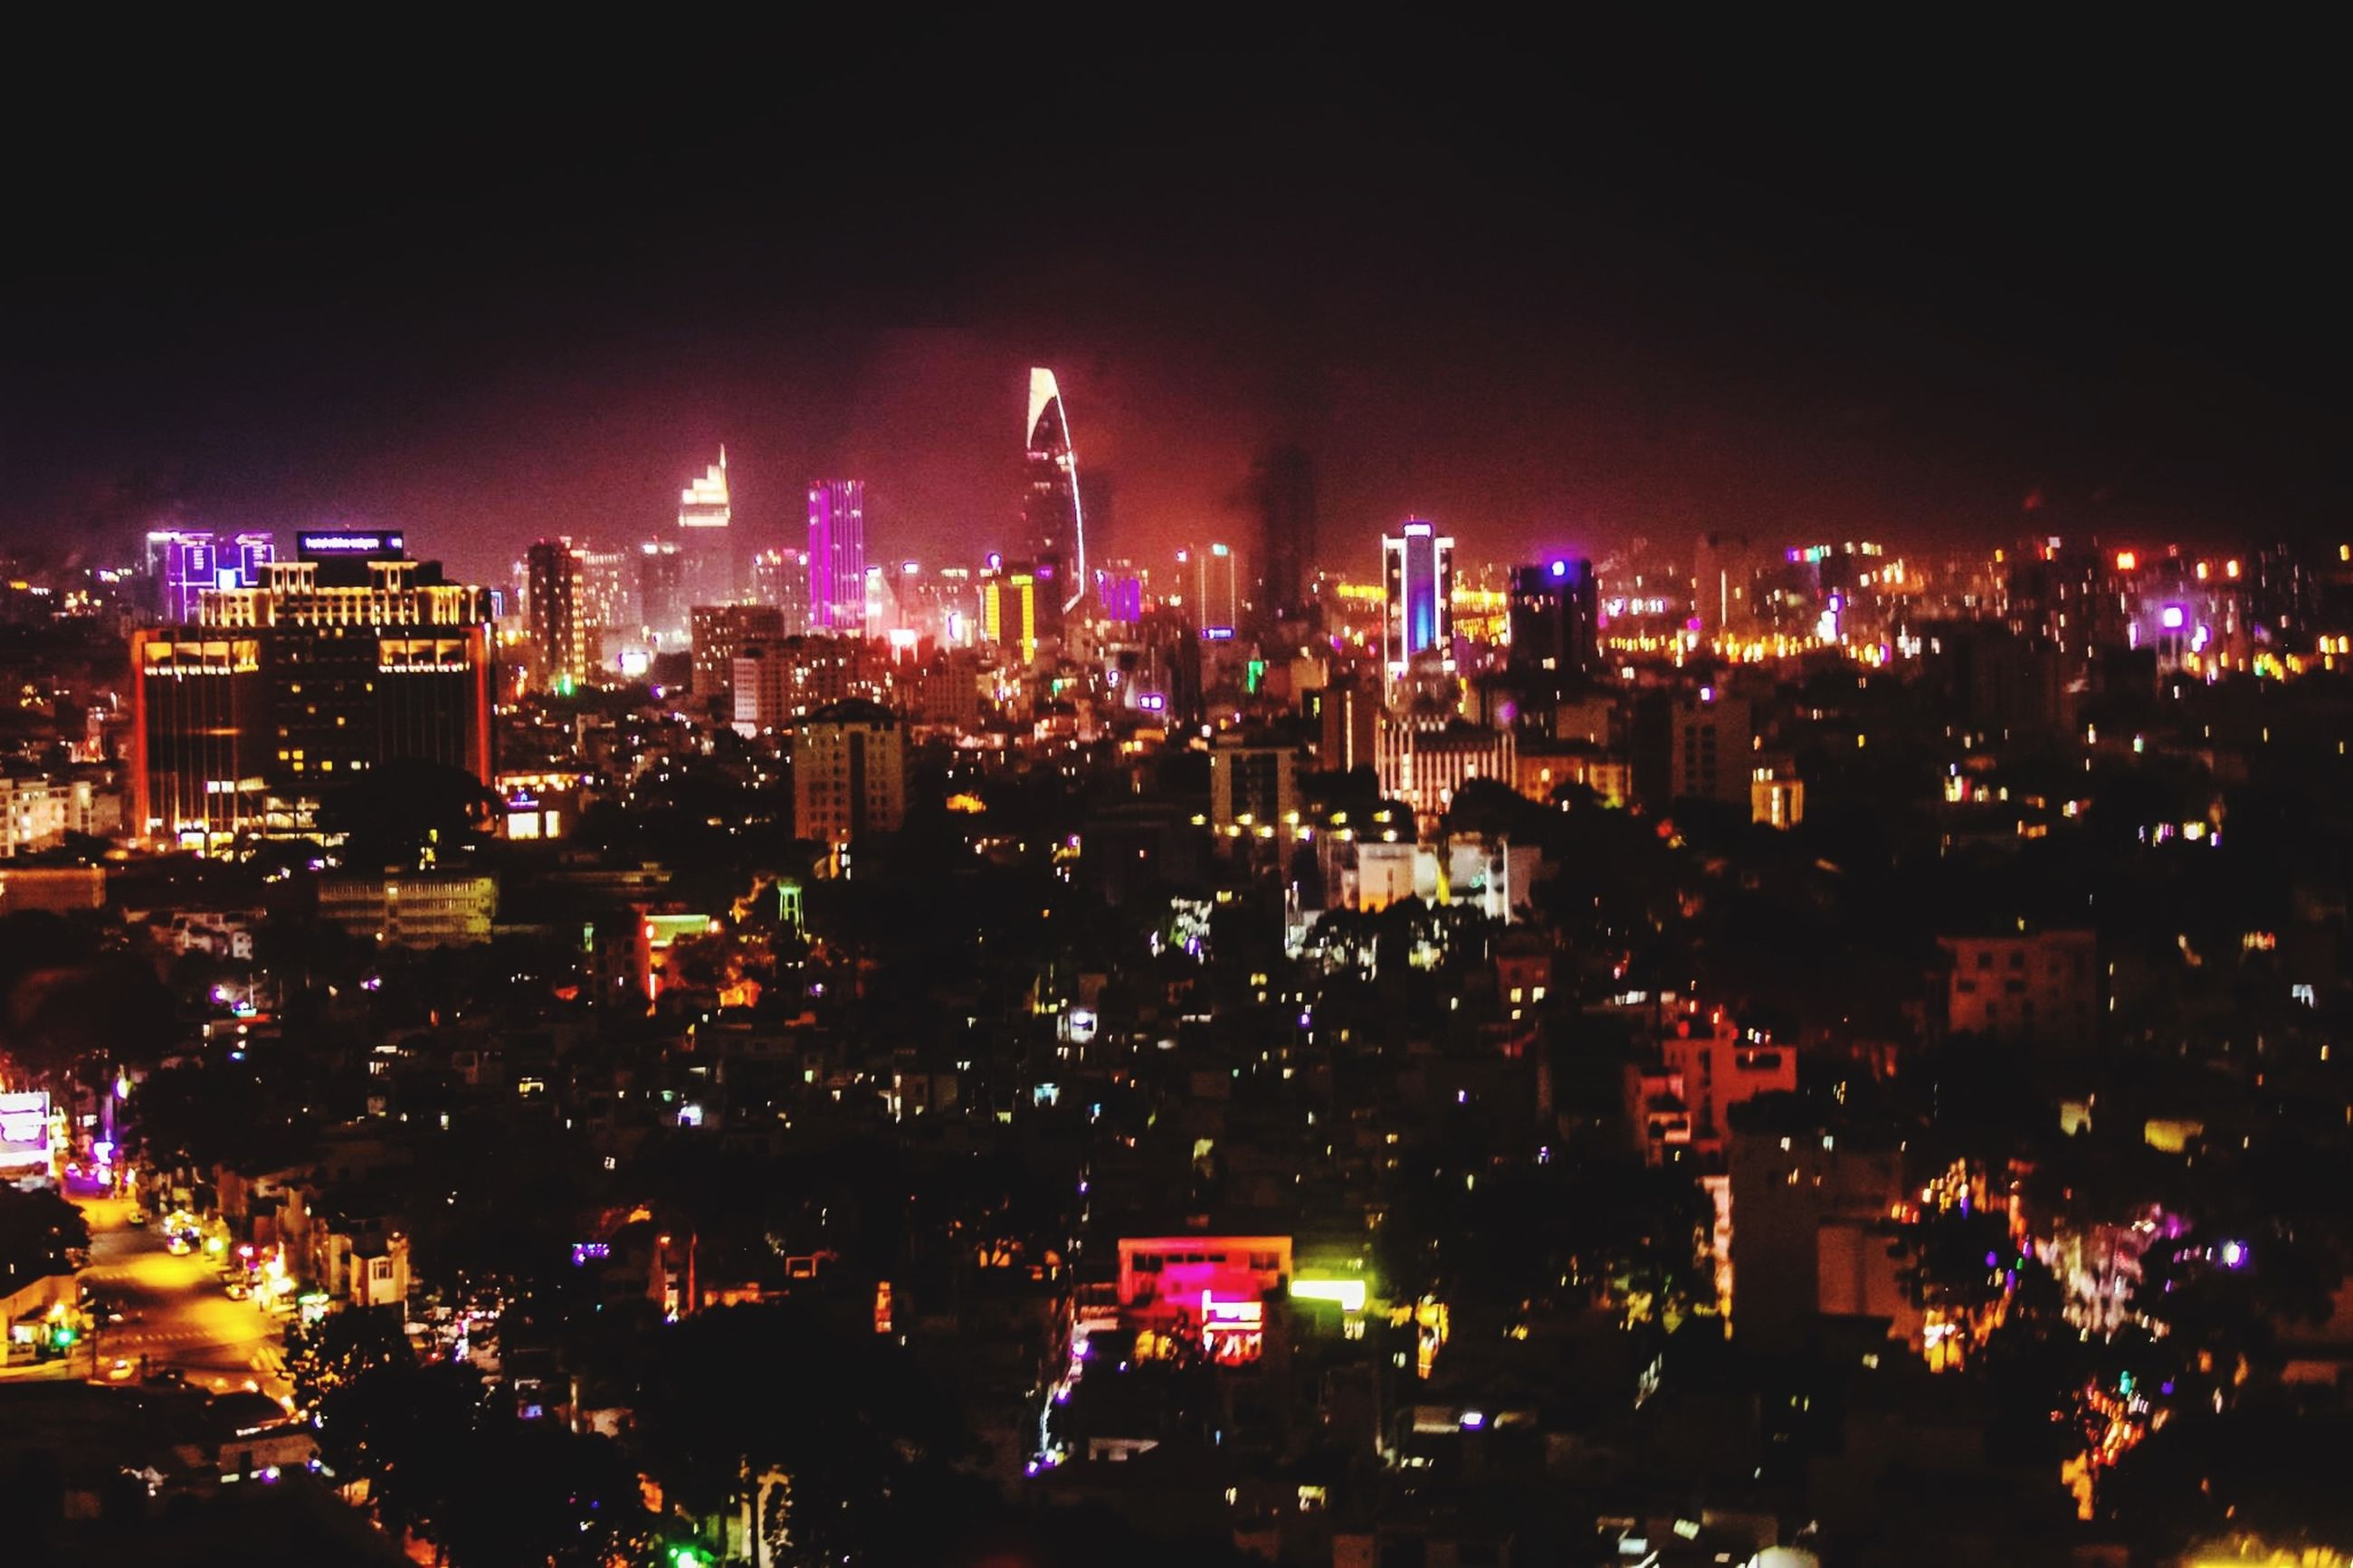 illuminated, night, city, building exterior, cityscape, architecture, skyscraper, built structure, crowded, tall - high, tower, high angle view, office building, city life, modern, urban skyline, capital cities, financial district, sky, clear sky